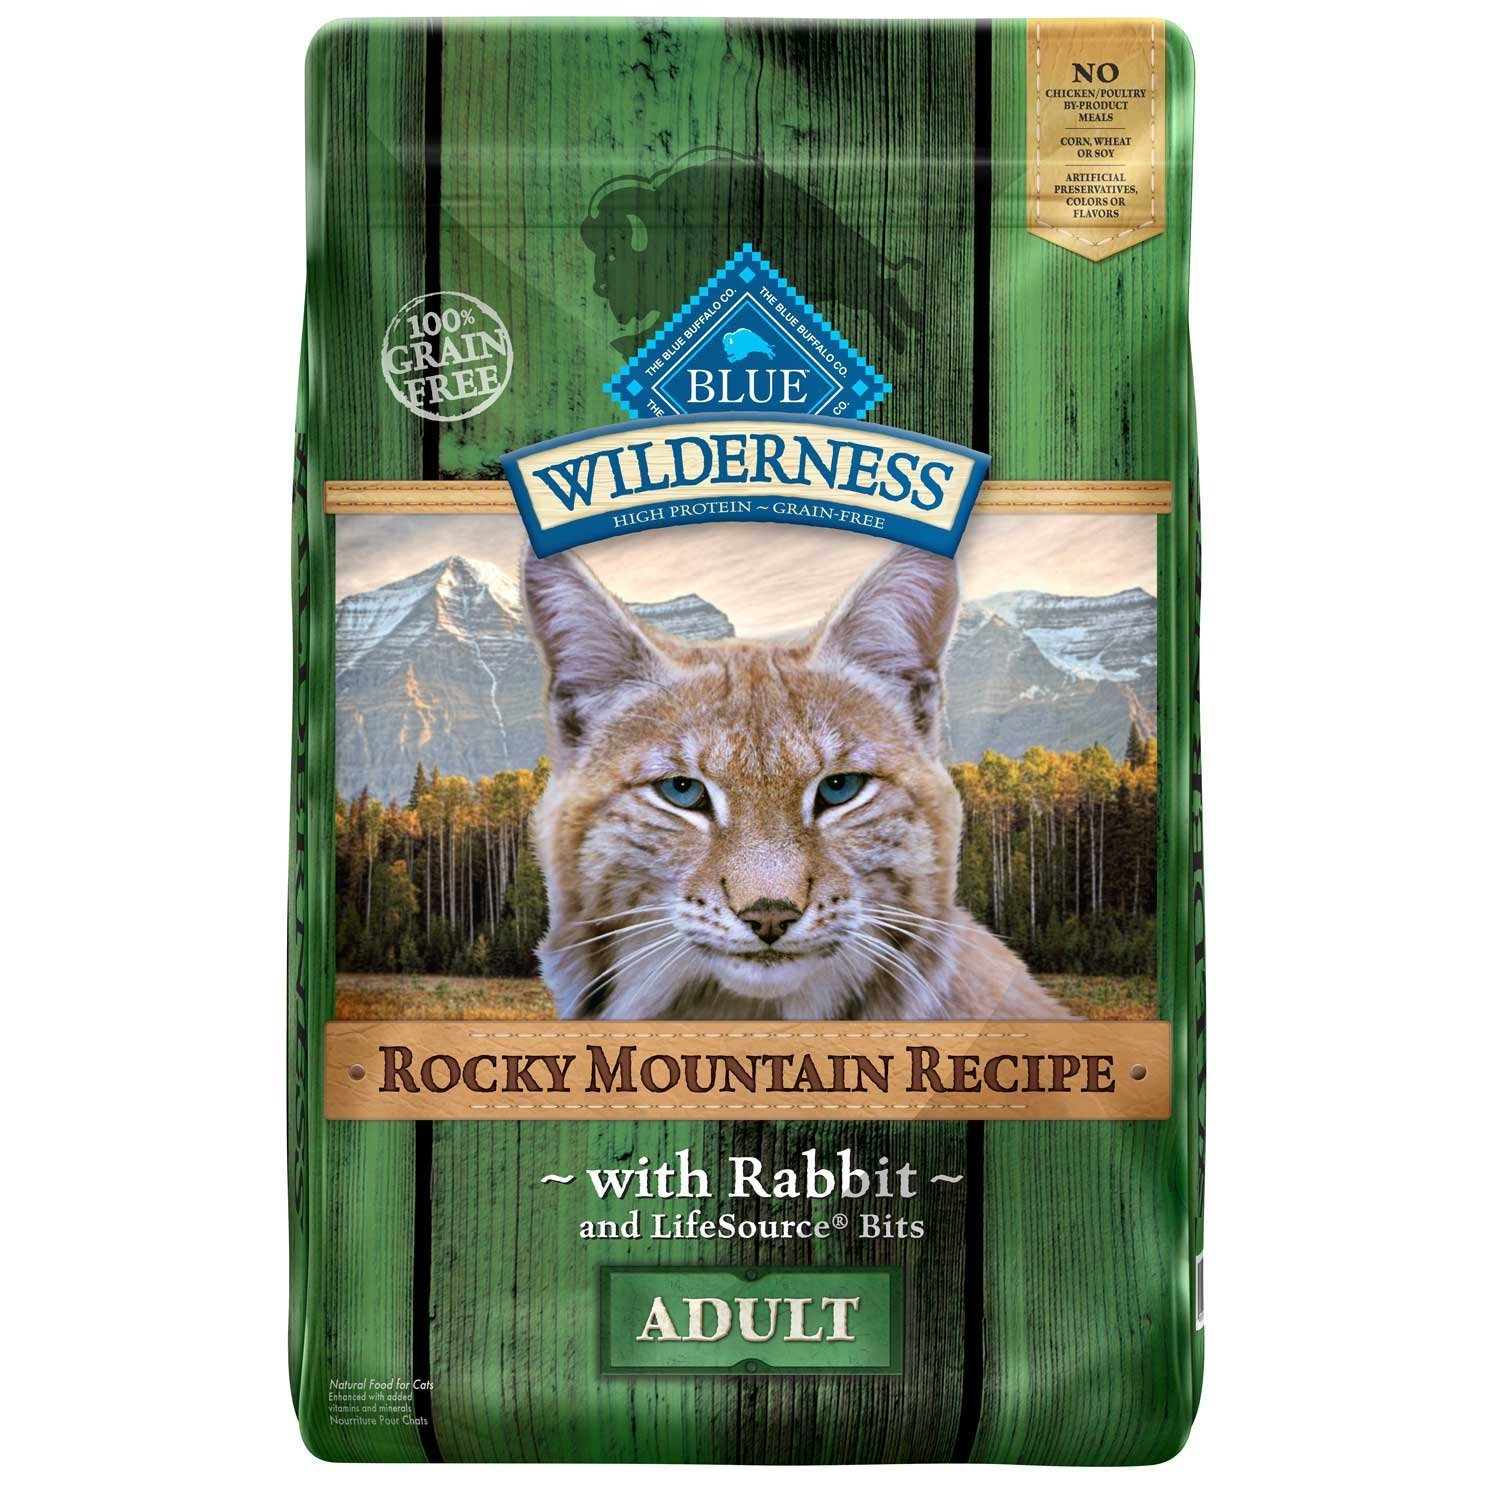 Blue Buffalo Wilderness Grain Free Rocky Mountain Rabbit Adult Cat Food, 10 lbs. (10/18) (A.M5)